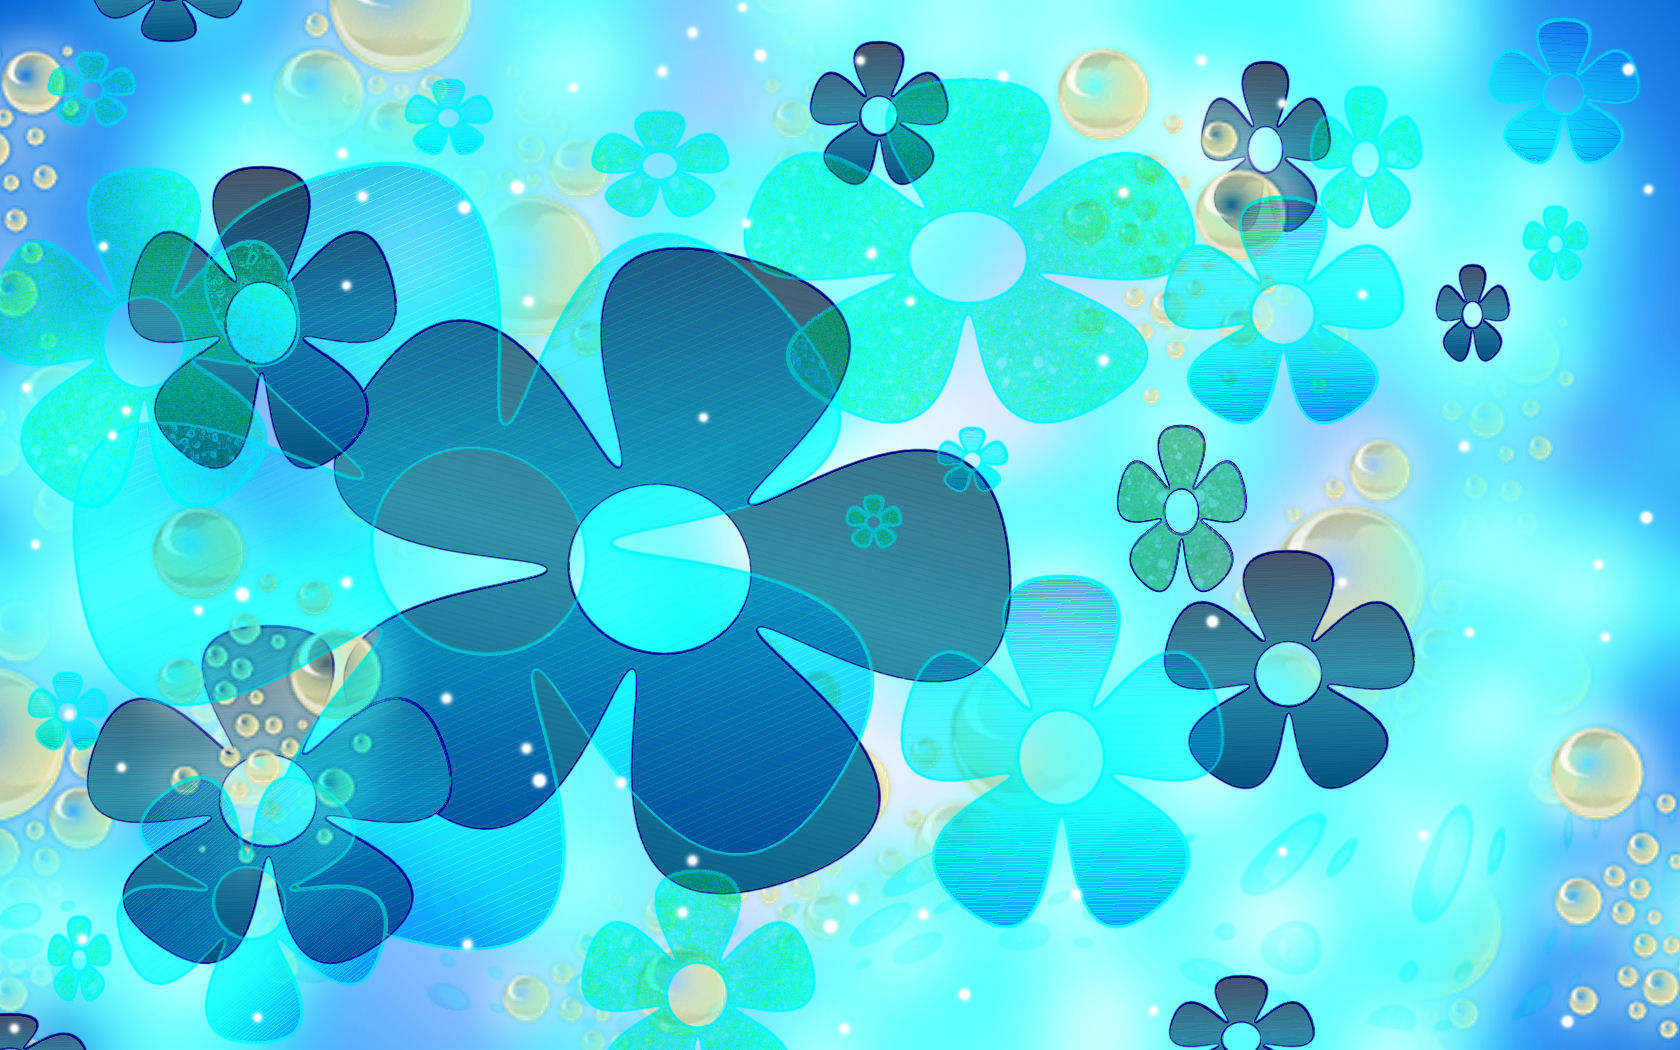 Hd Quality Blue And Pink Flower Fine Blue And Pink Flower Wallpapers